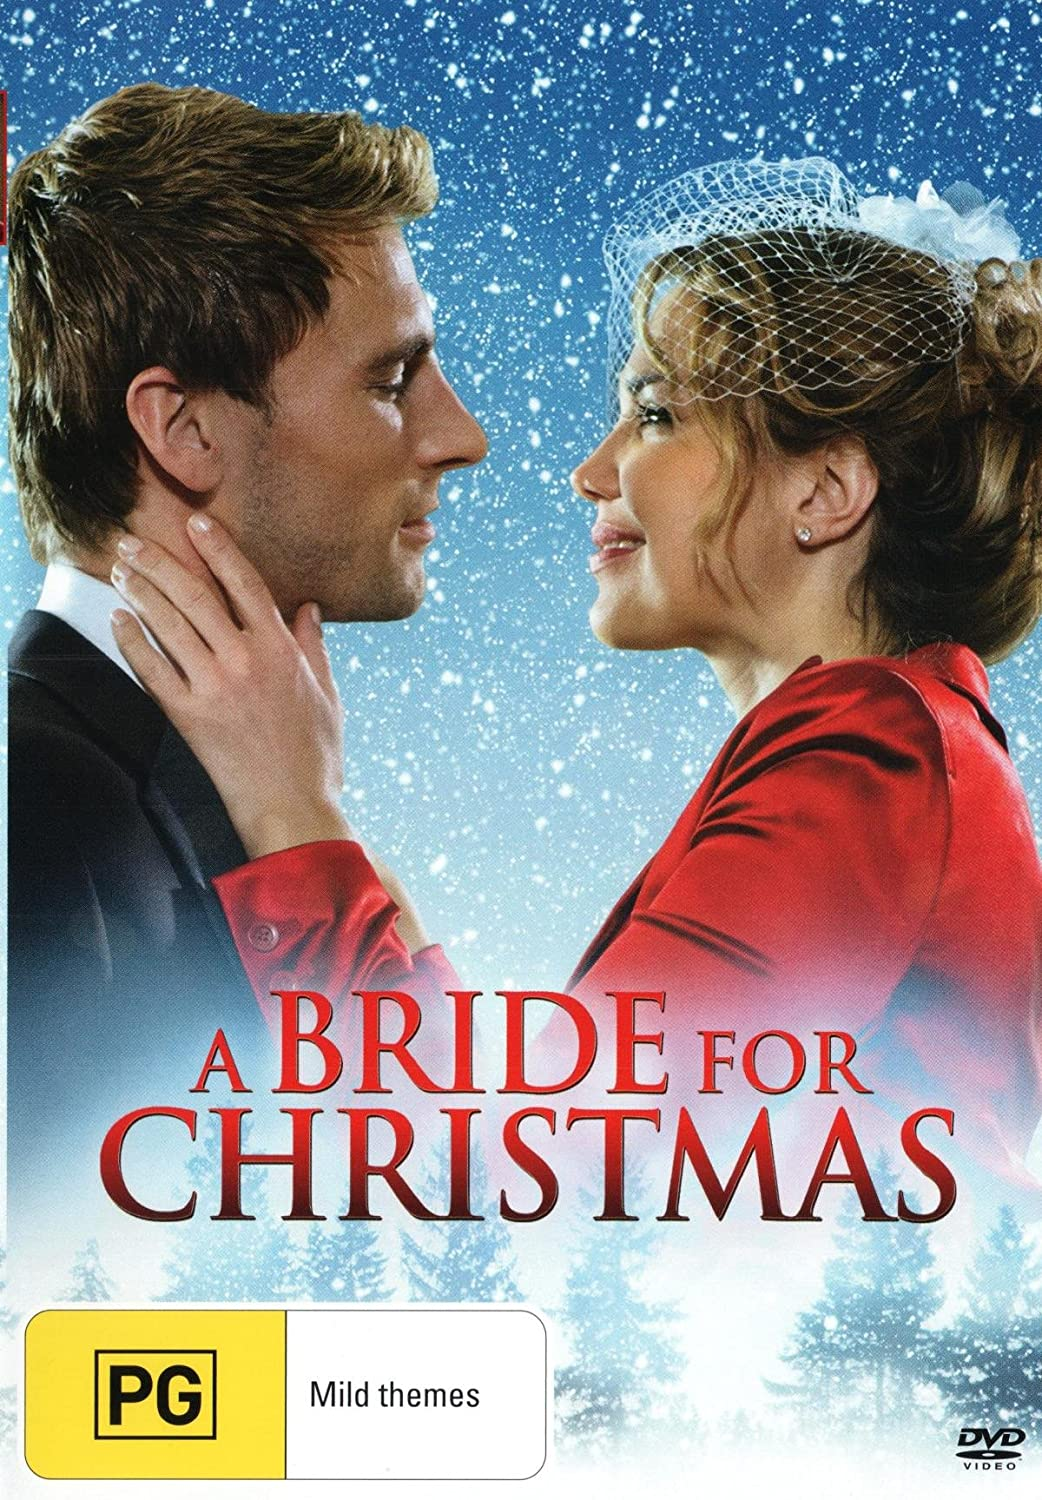 A Bride For Christmas.Amazon Com A Bride For Christmas Andrew W Walker Arielle